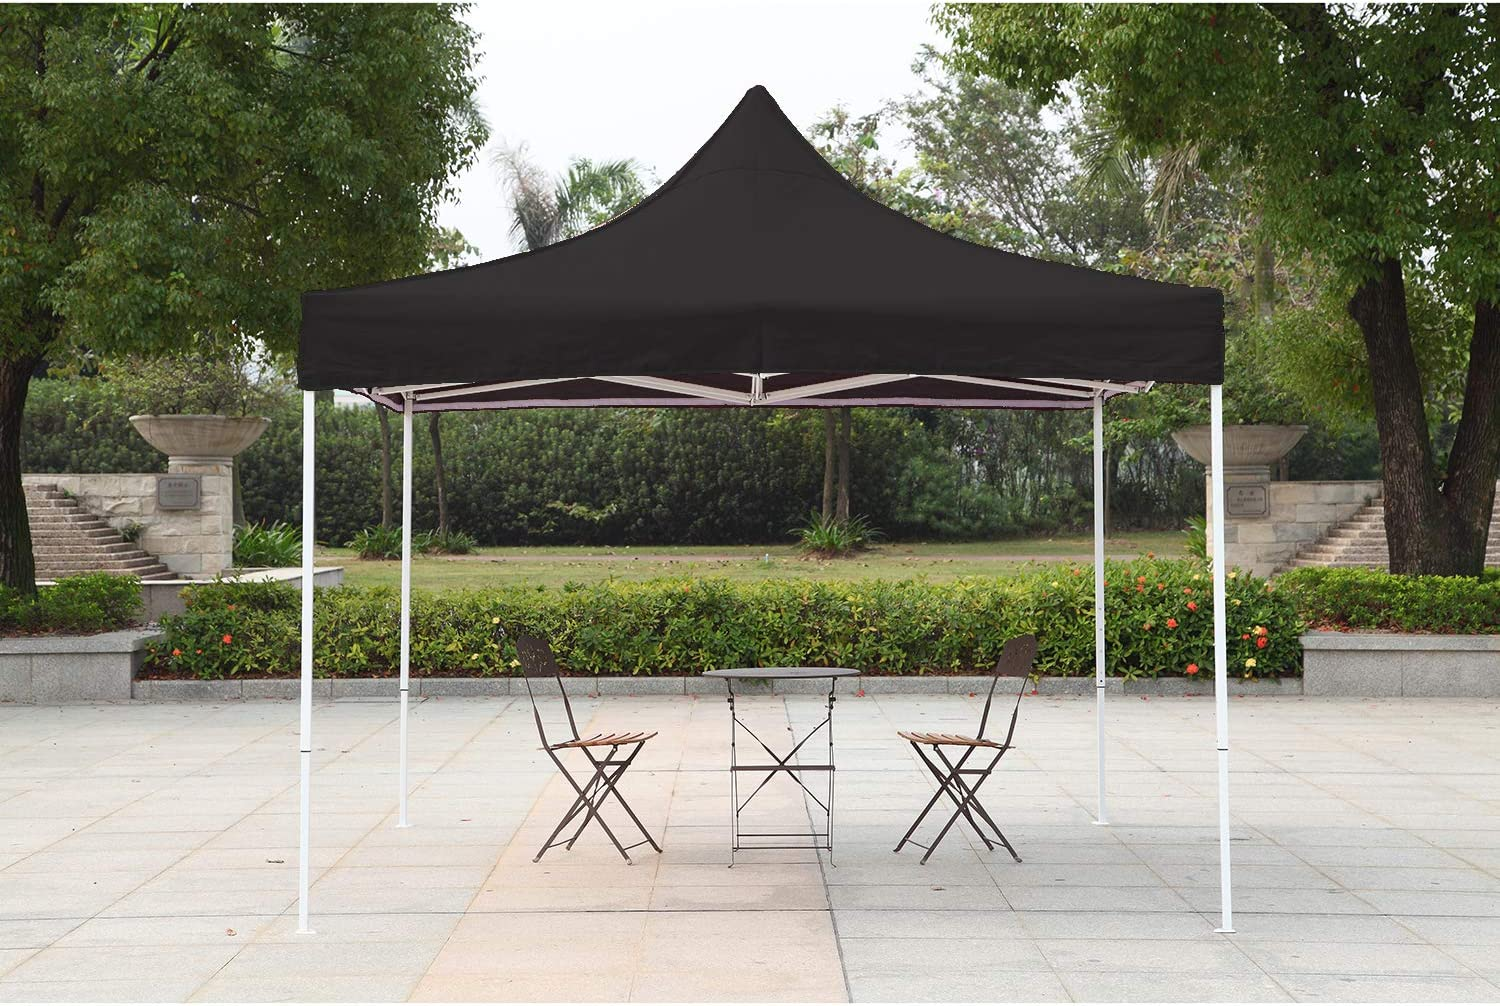 American Phoenix Pop Up Canopy Tent 10×10 Portable Instant Commercial Outdoor Beach Heavy Duty Market Shelter Black